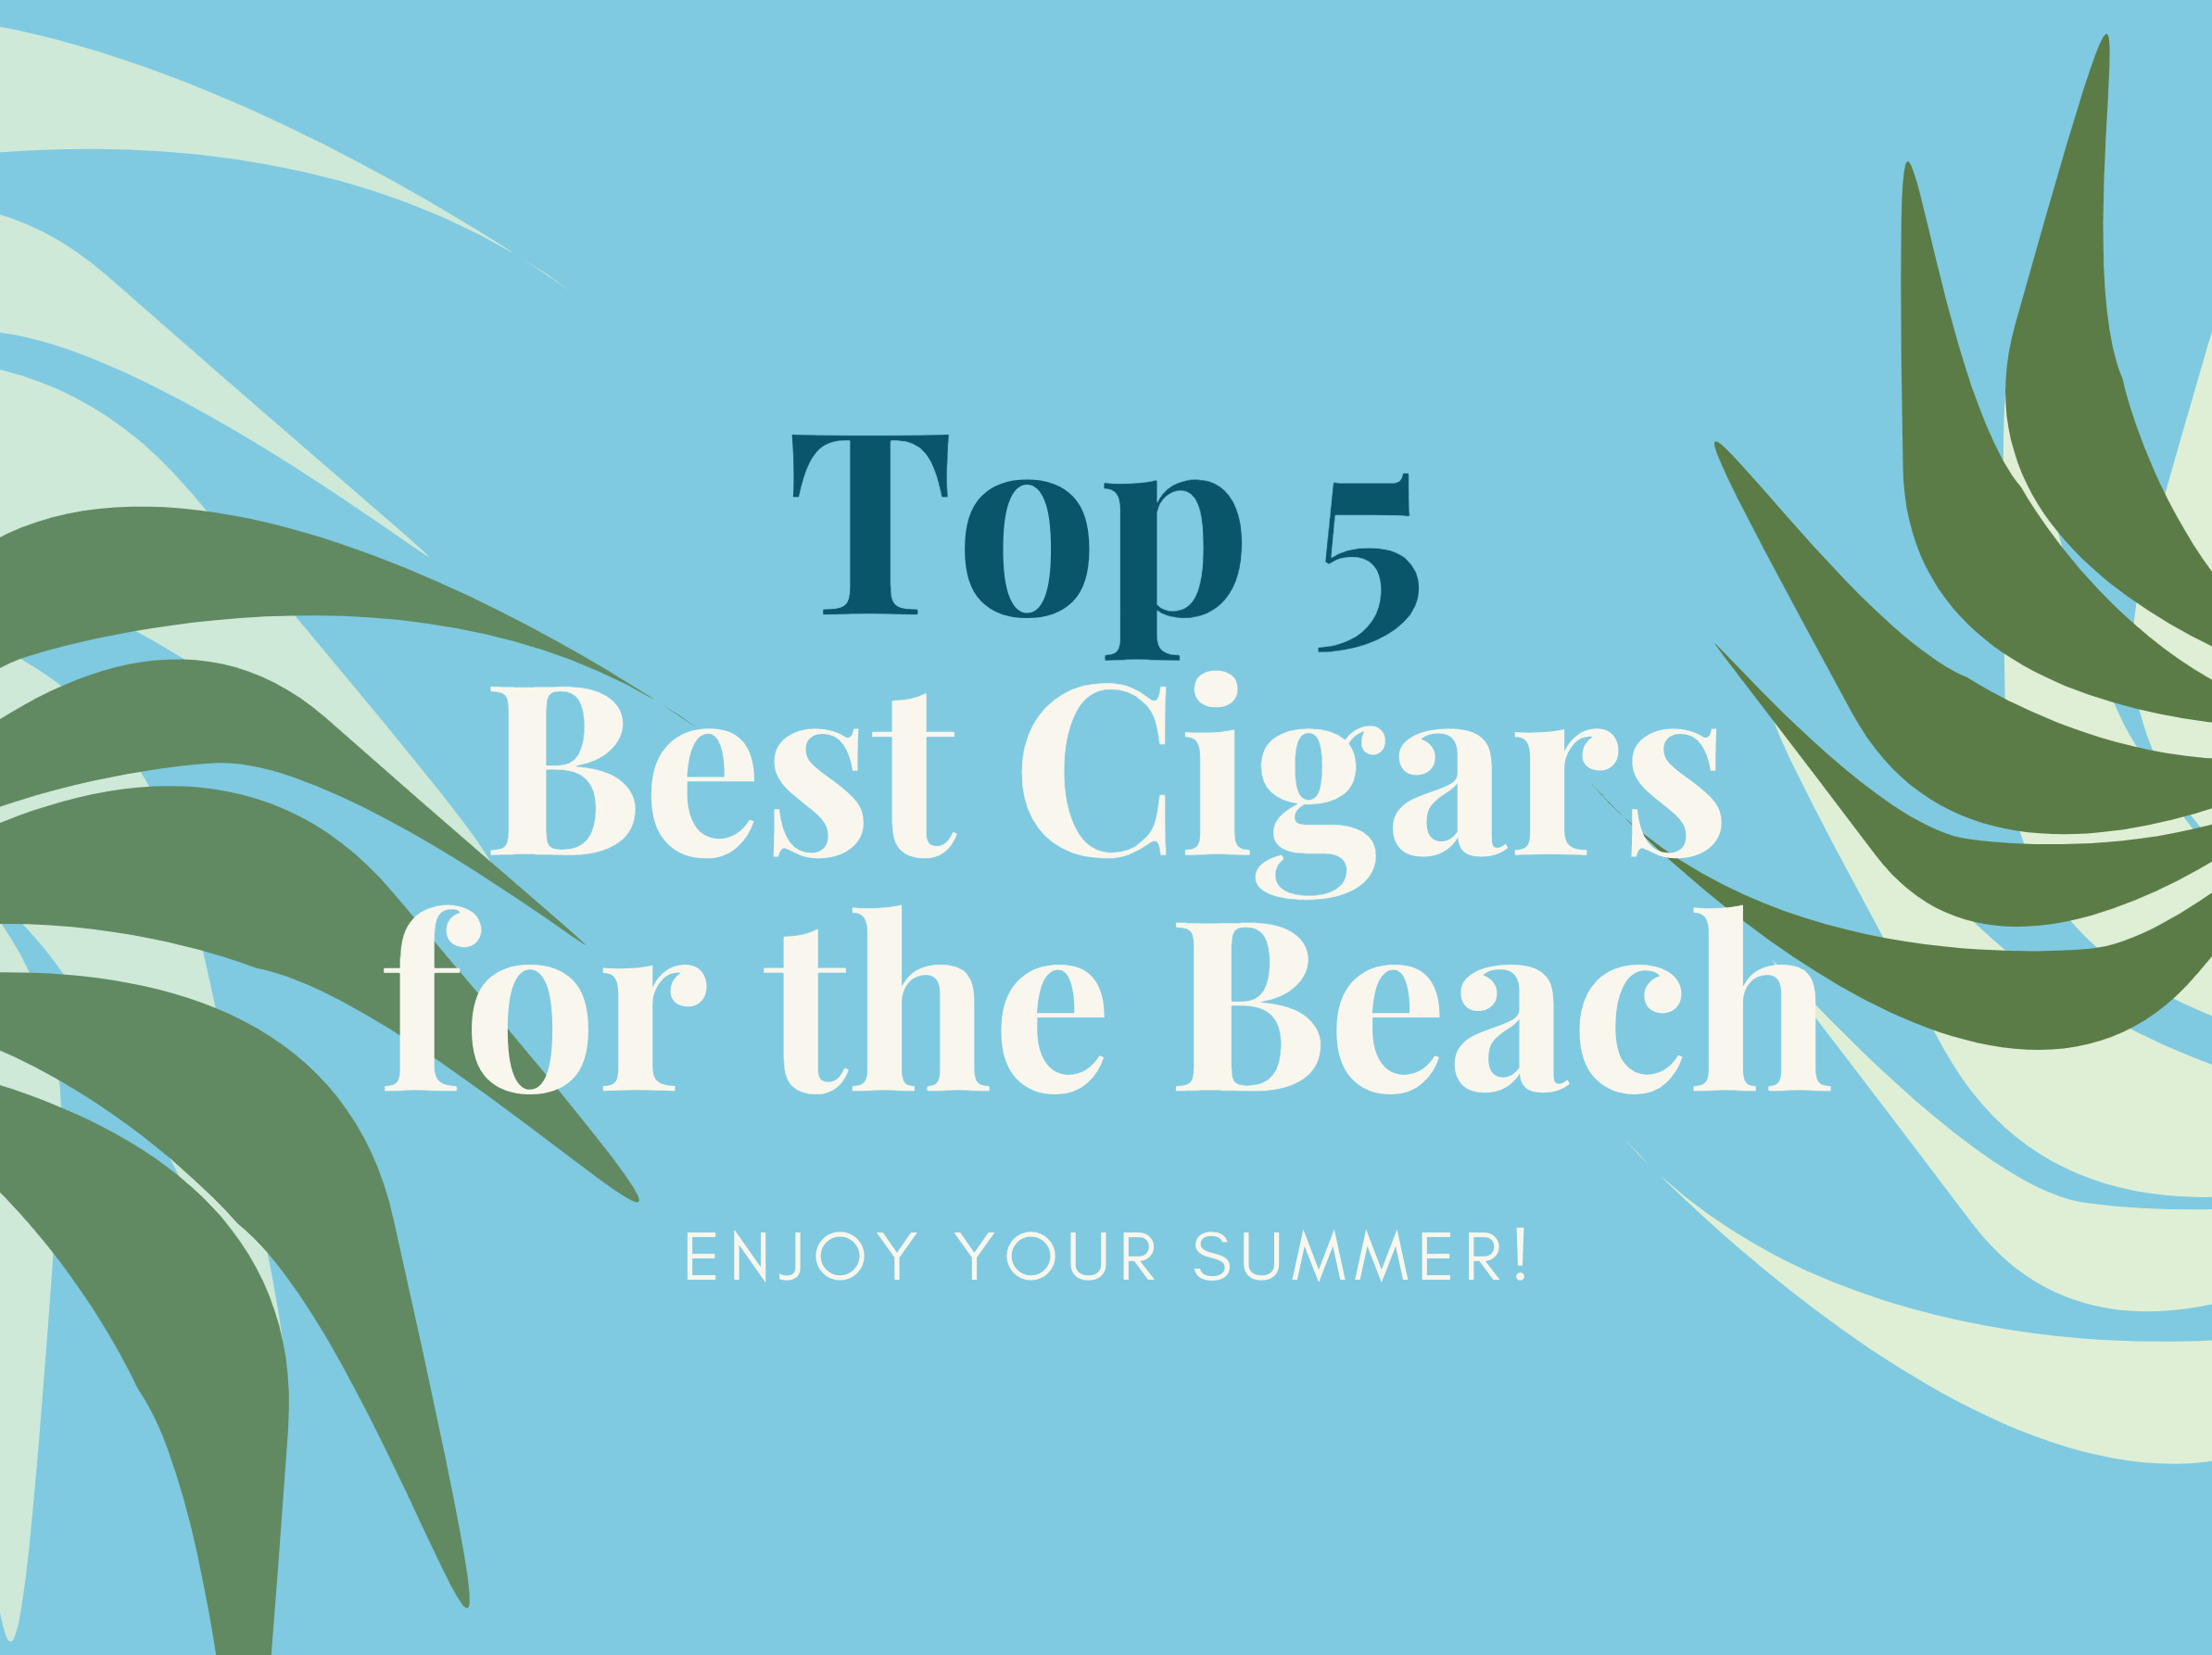 Top 5 Best Cigars for the Beach